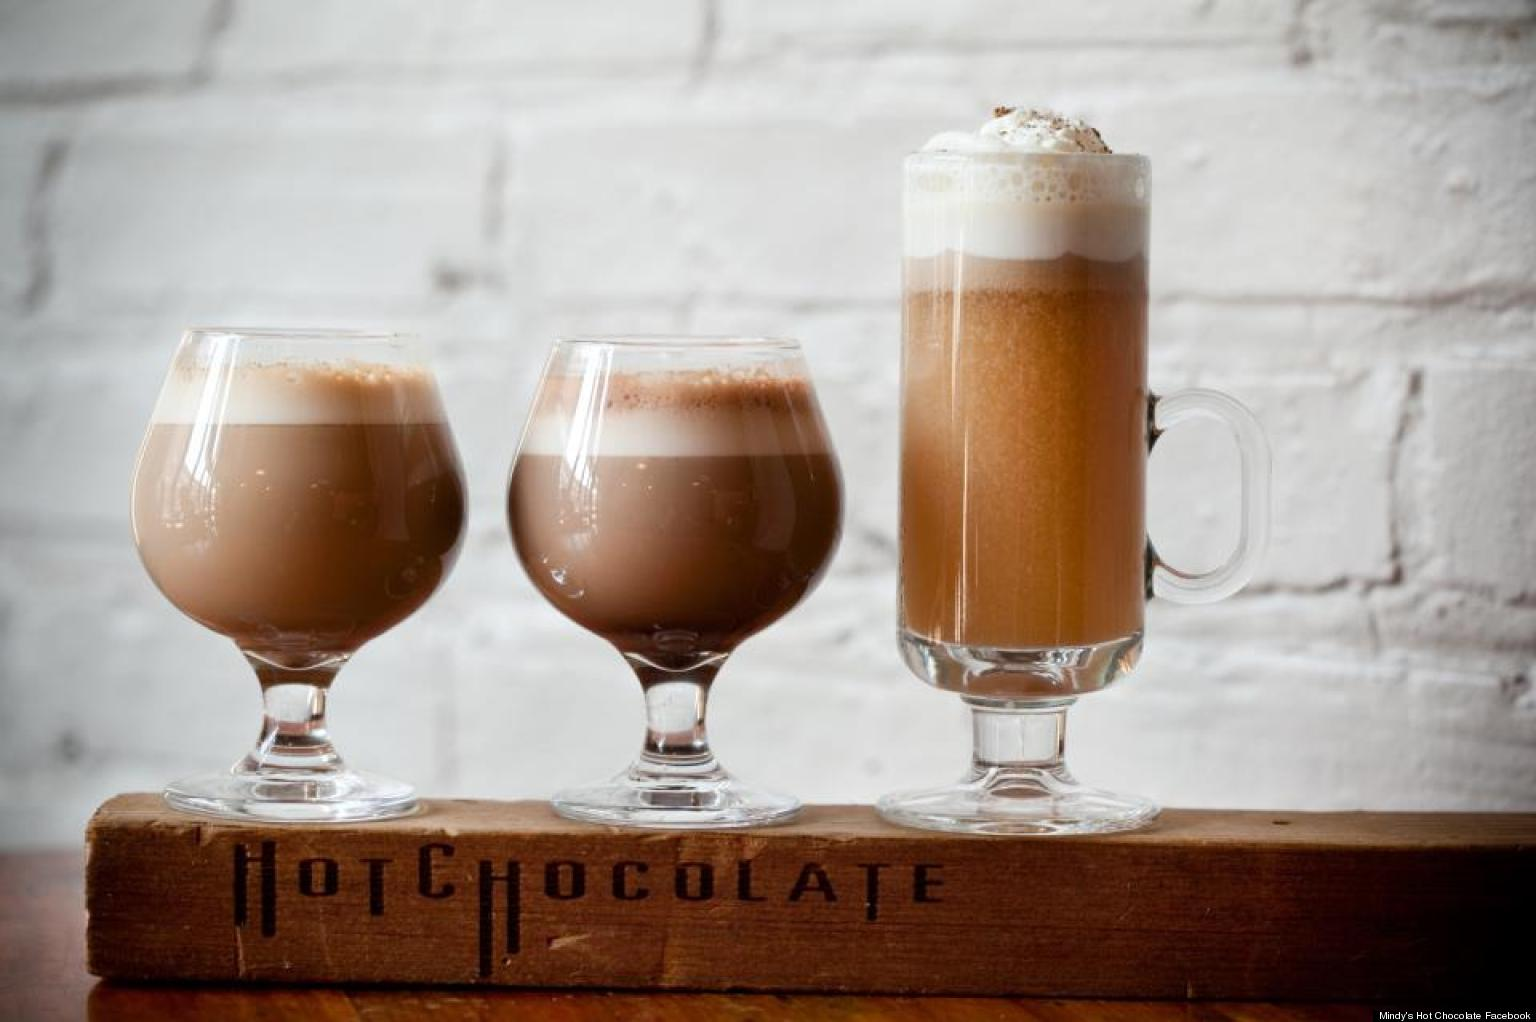 Best Hot Chocolate In Chicago: Where To Warm Up With The Tastiest ...